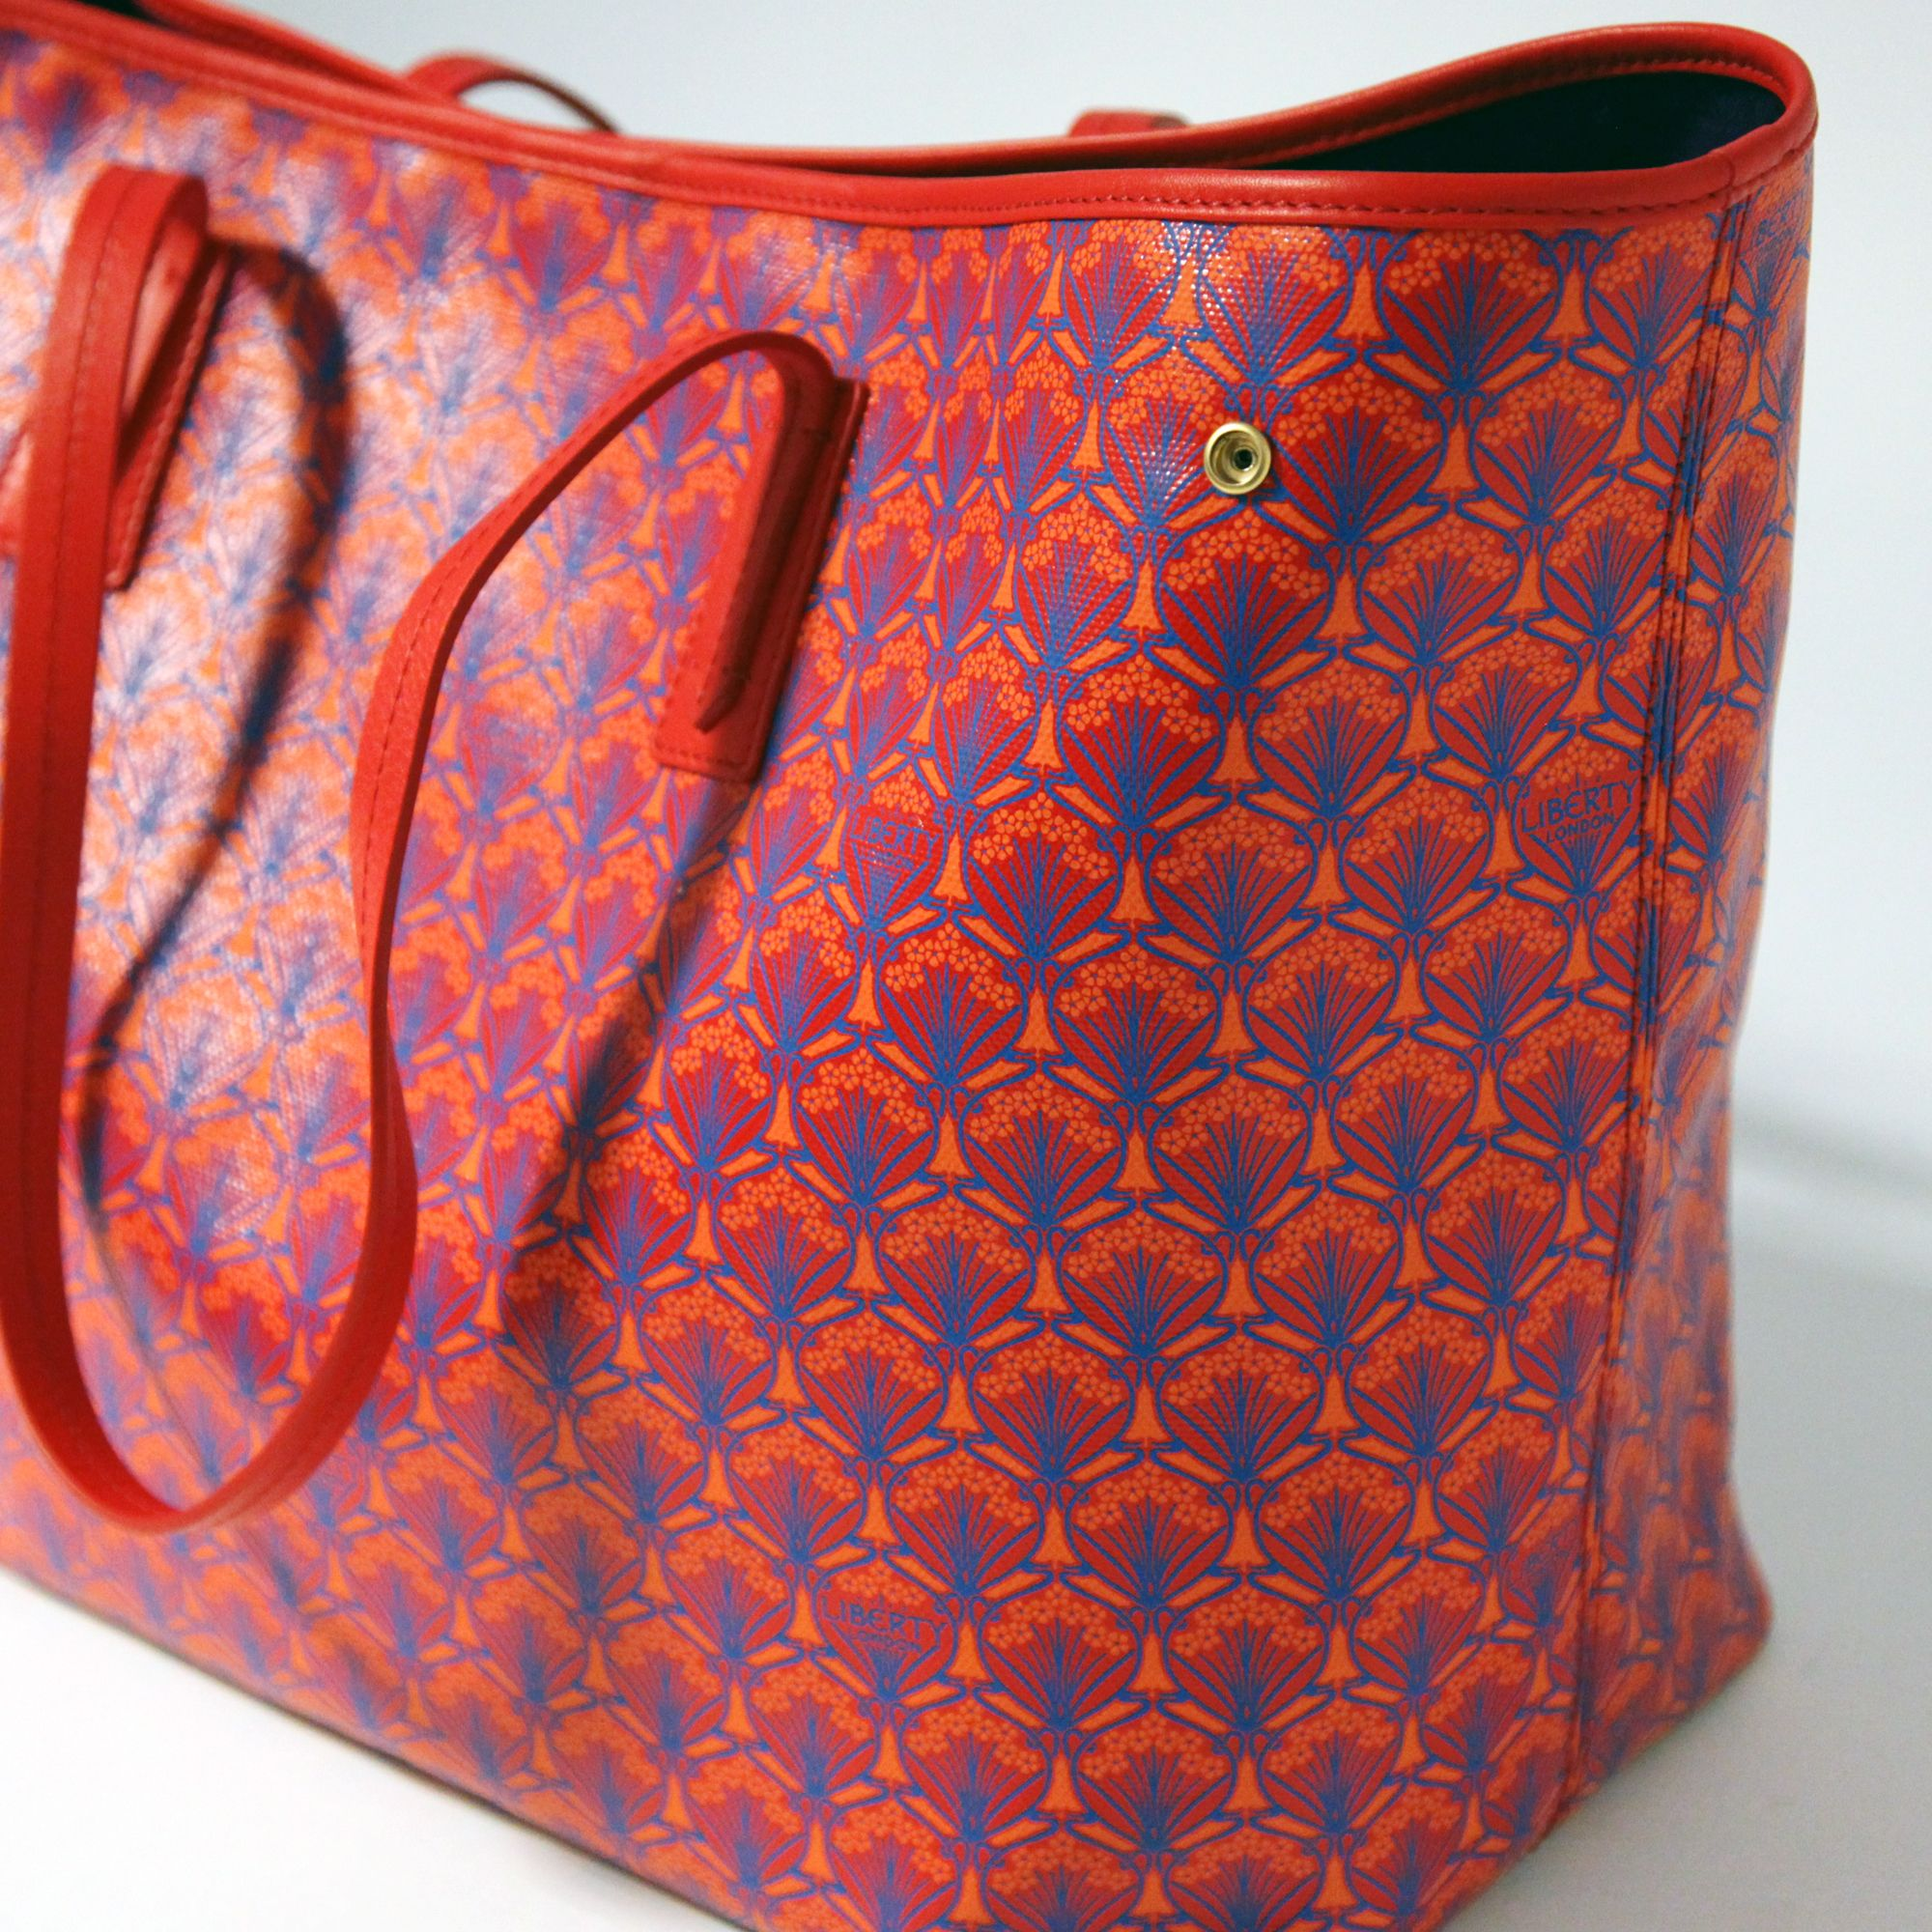 Red Iphis Liberty Tote Bag From The London Collection Get Yours At Co Uk